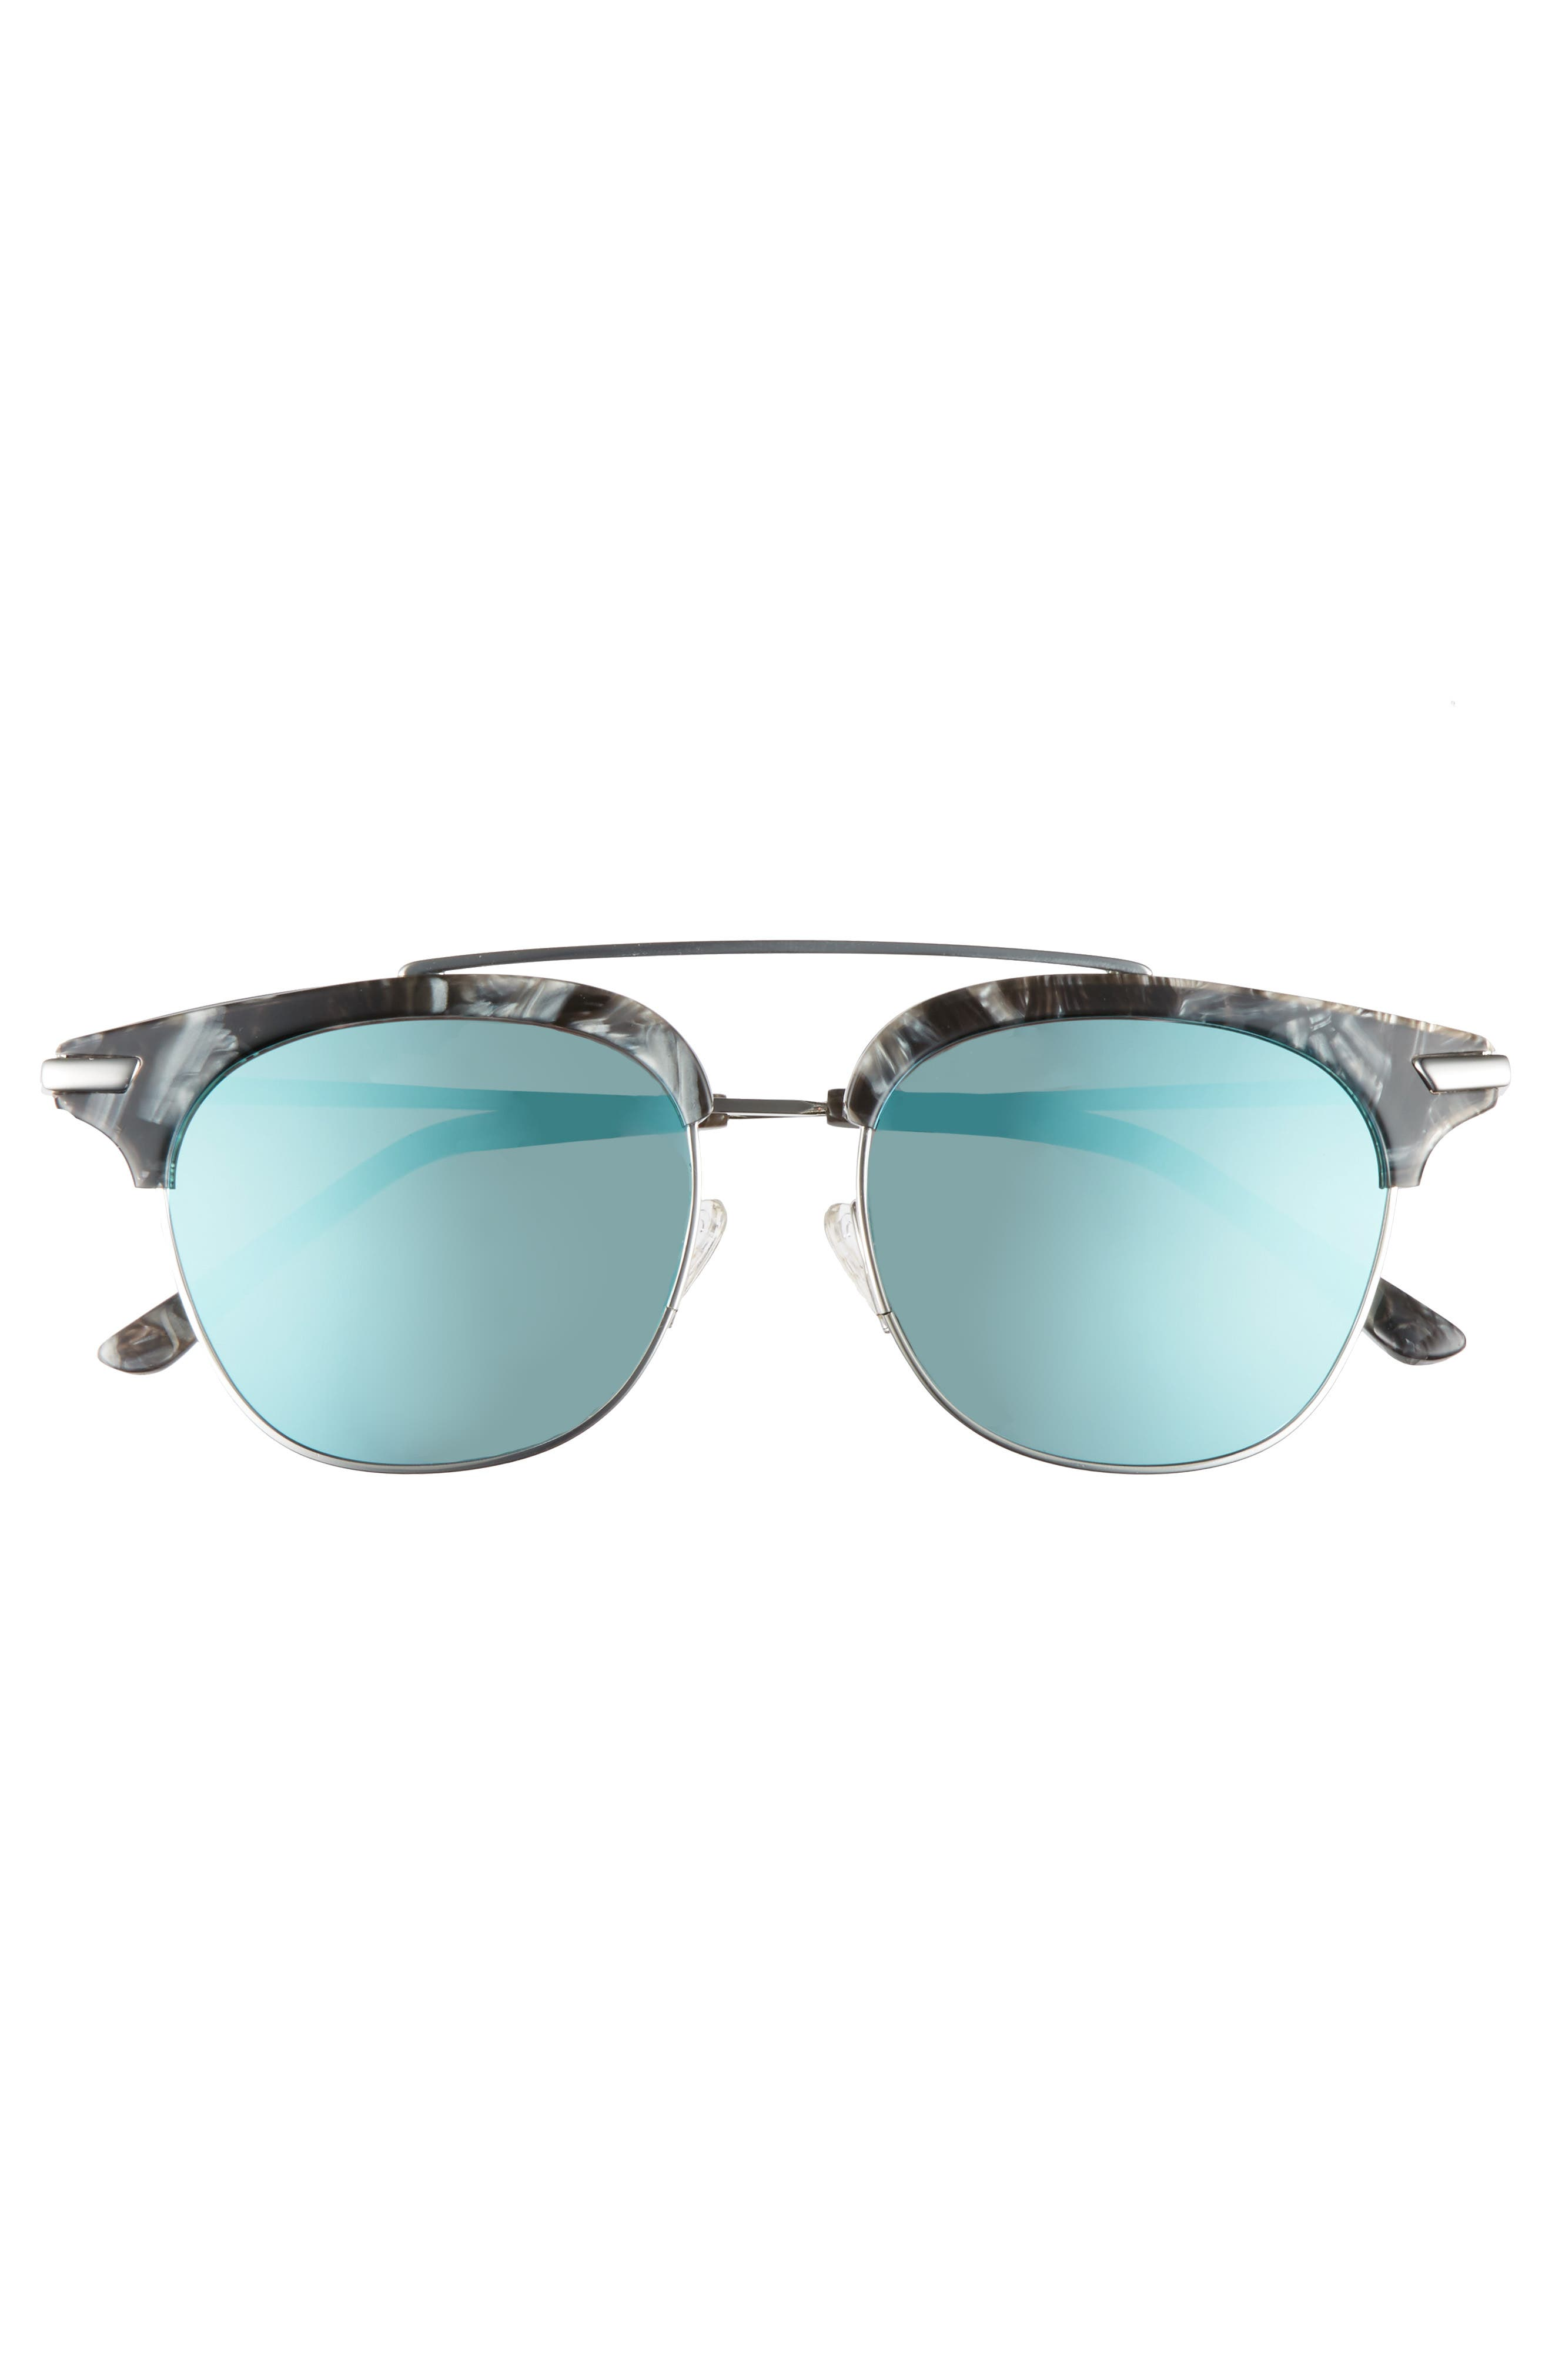 Midway 51mm Polarized Brow Bar Sunglasses,                             Alternate thumbnail 3, color,                             BLUE